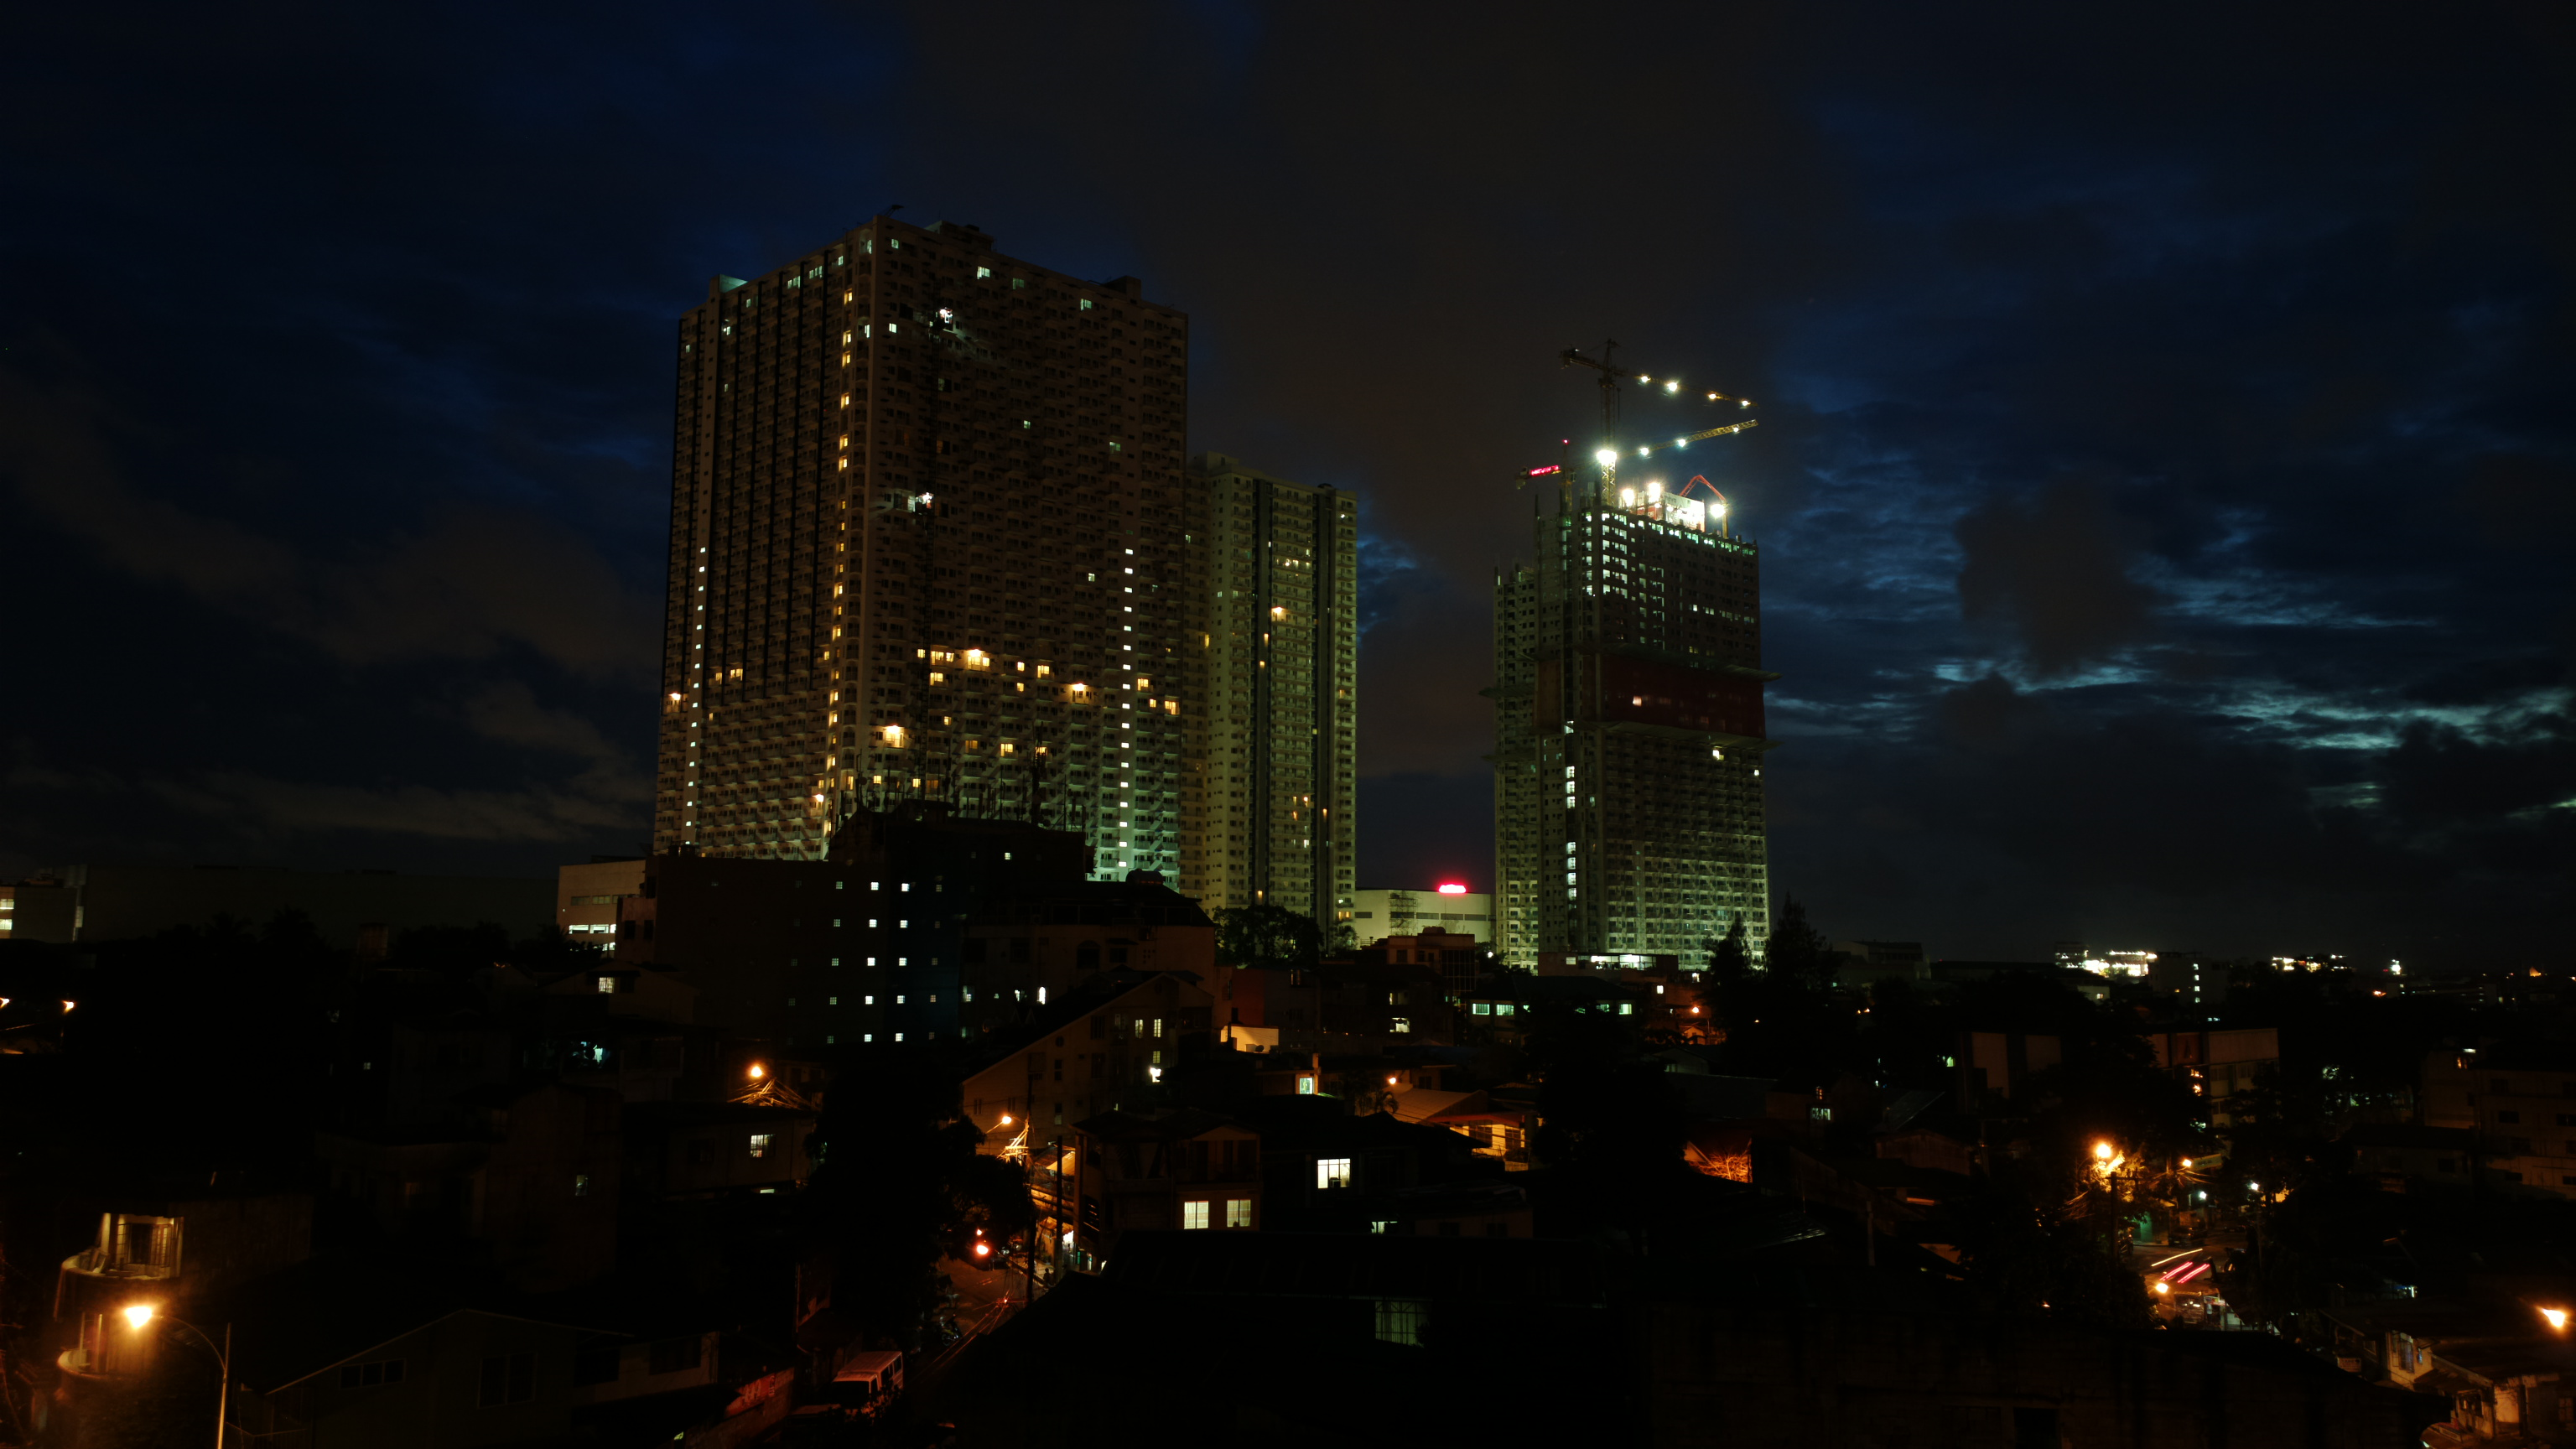 Nokia 808 PureView Camera Phone photo taken by ILoveBhe on ...